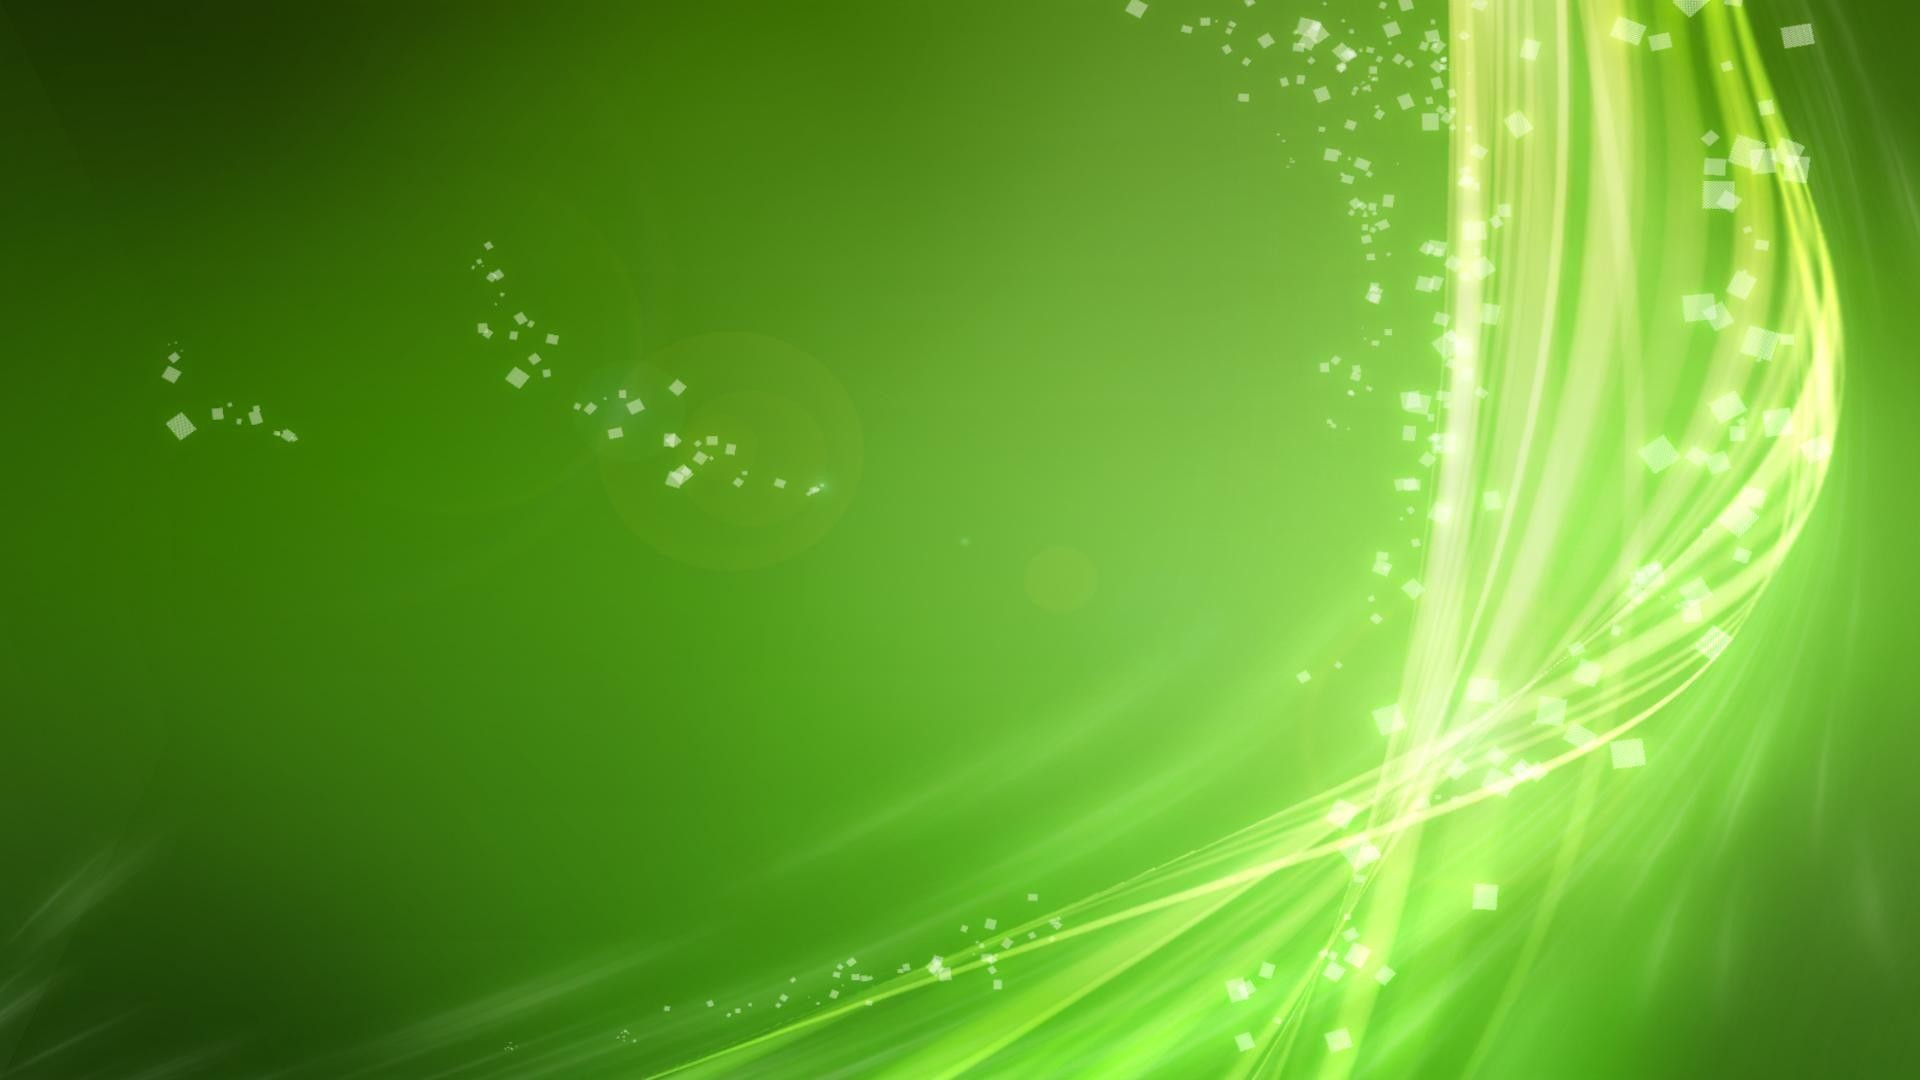 1920x1080 HD Lime Green Image.